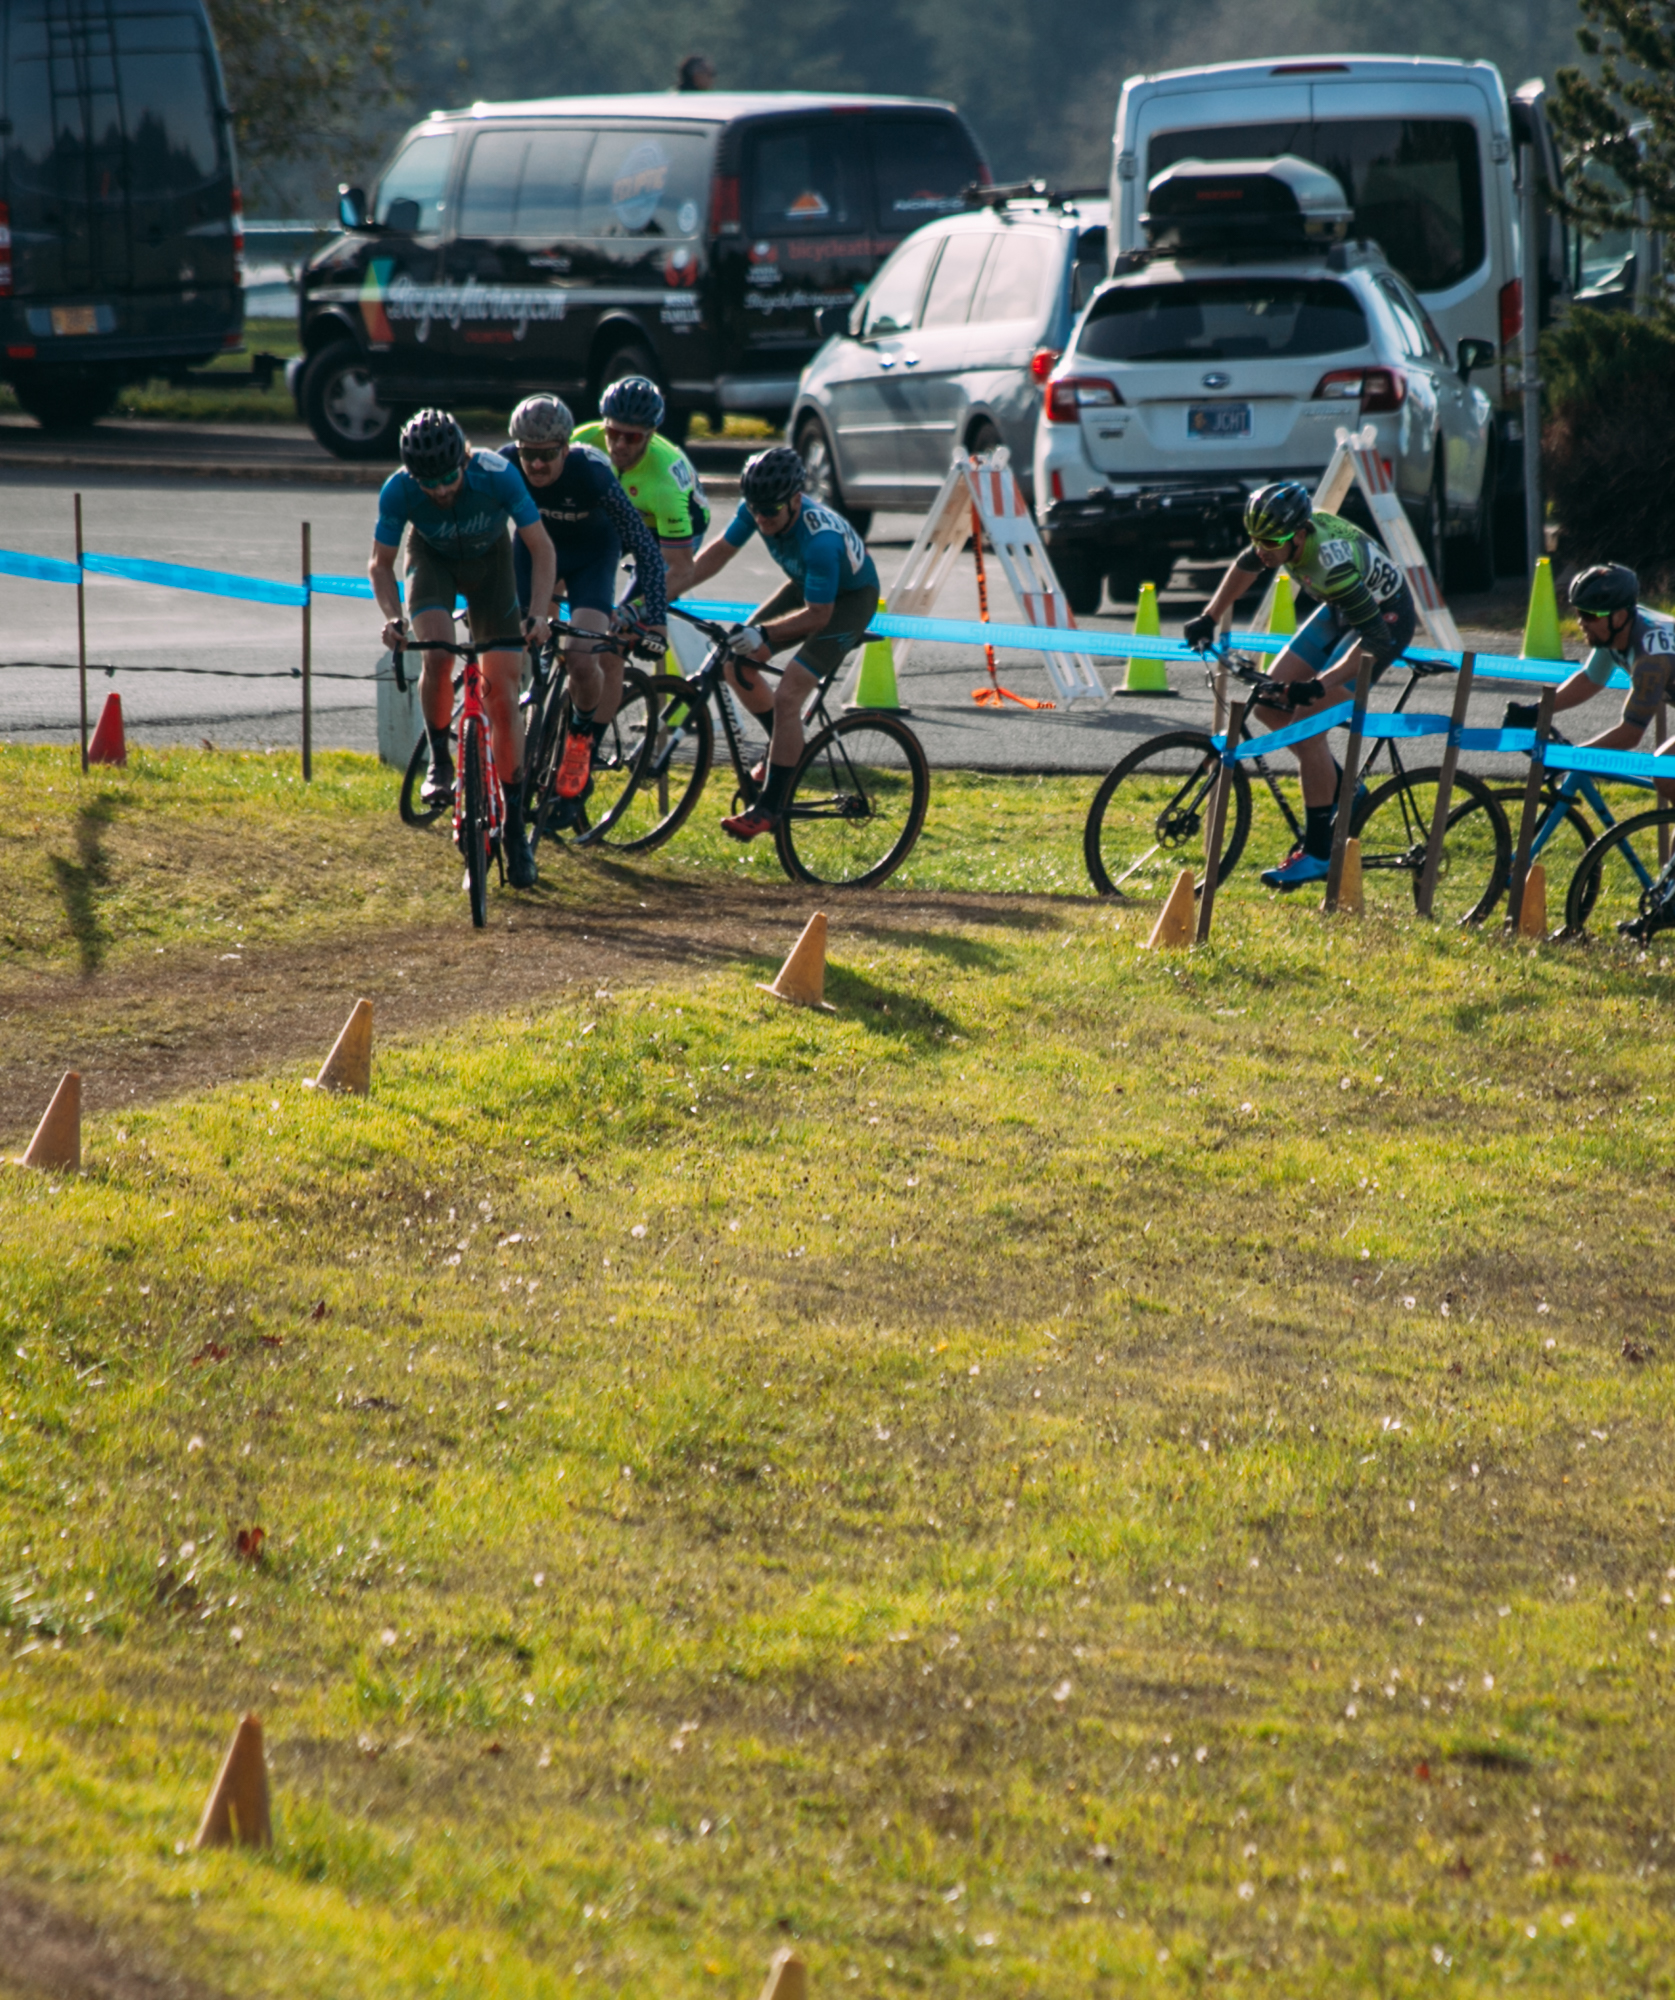 Cyclocross18_CCCX_RainierHS-39-mettlecycling.jpg